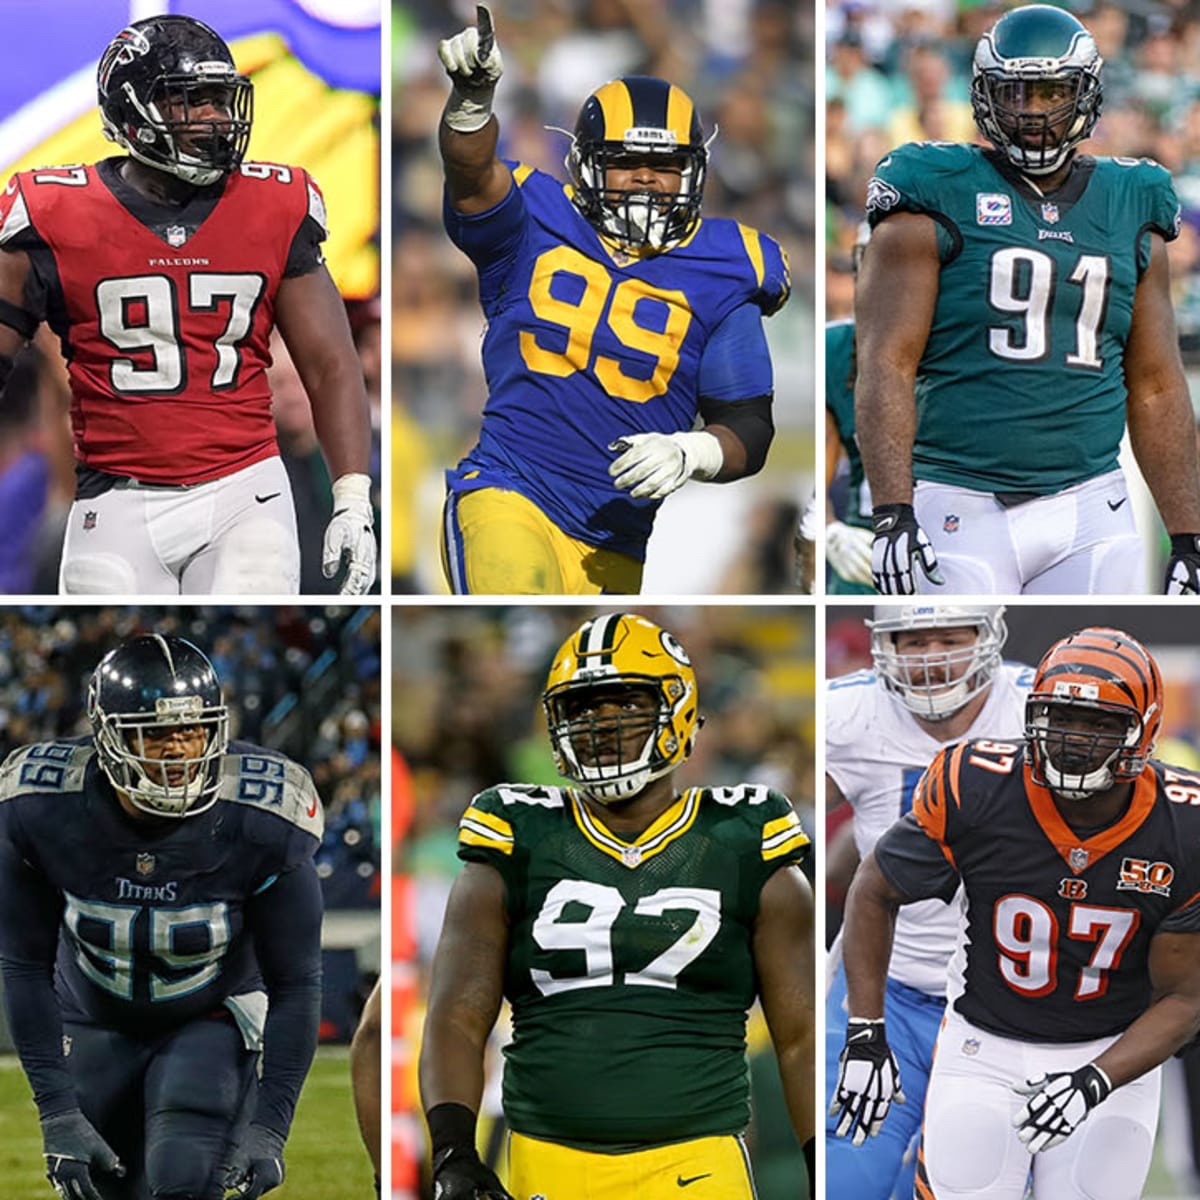 Power Rankings The NFL Divisions By Defensive Line Situations.